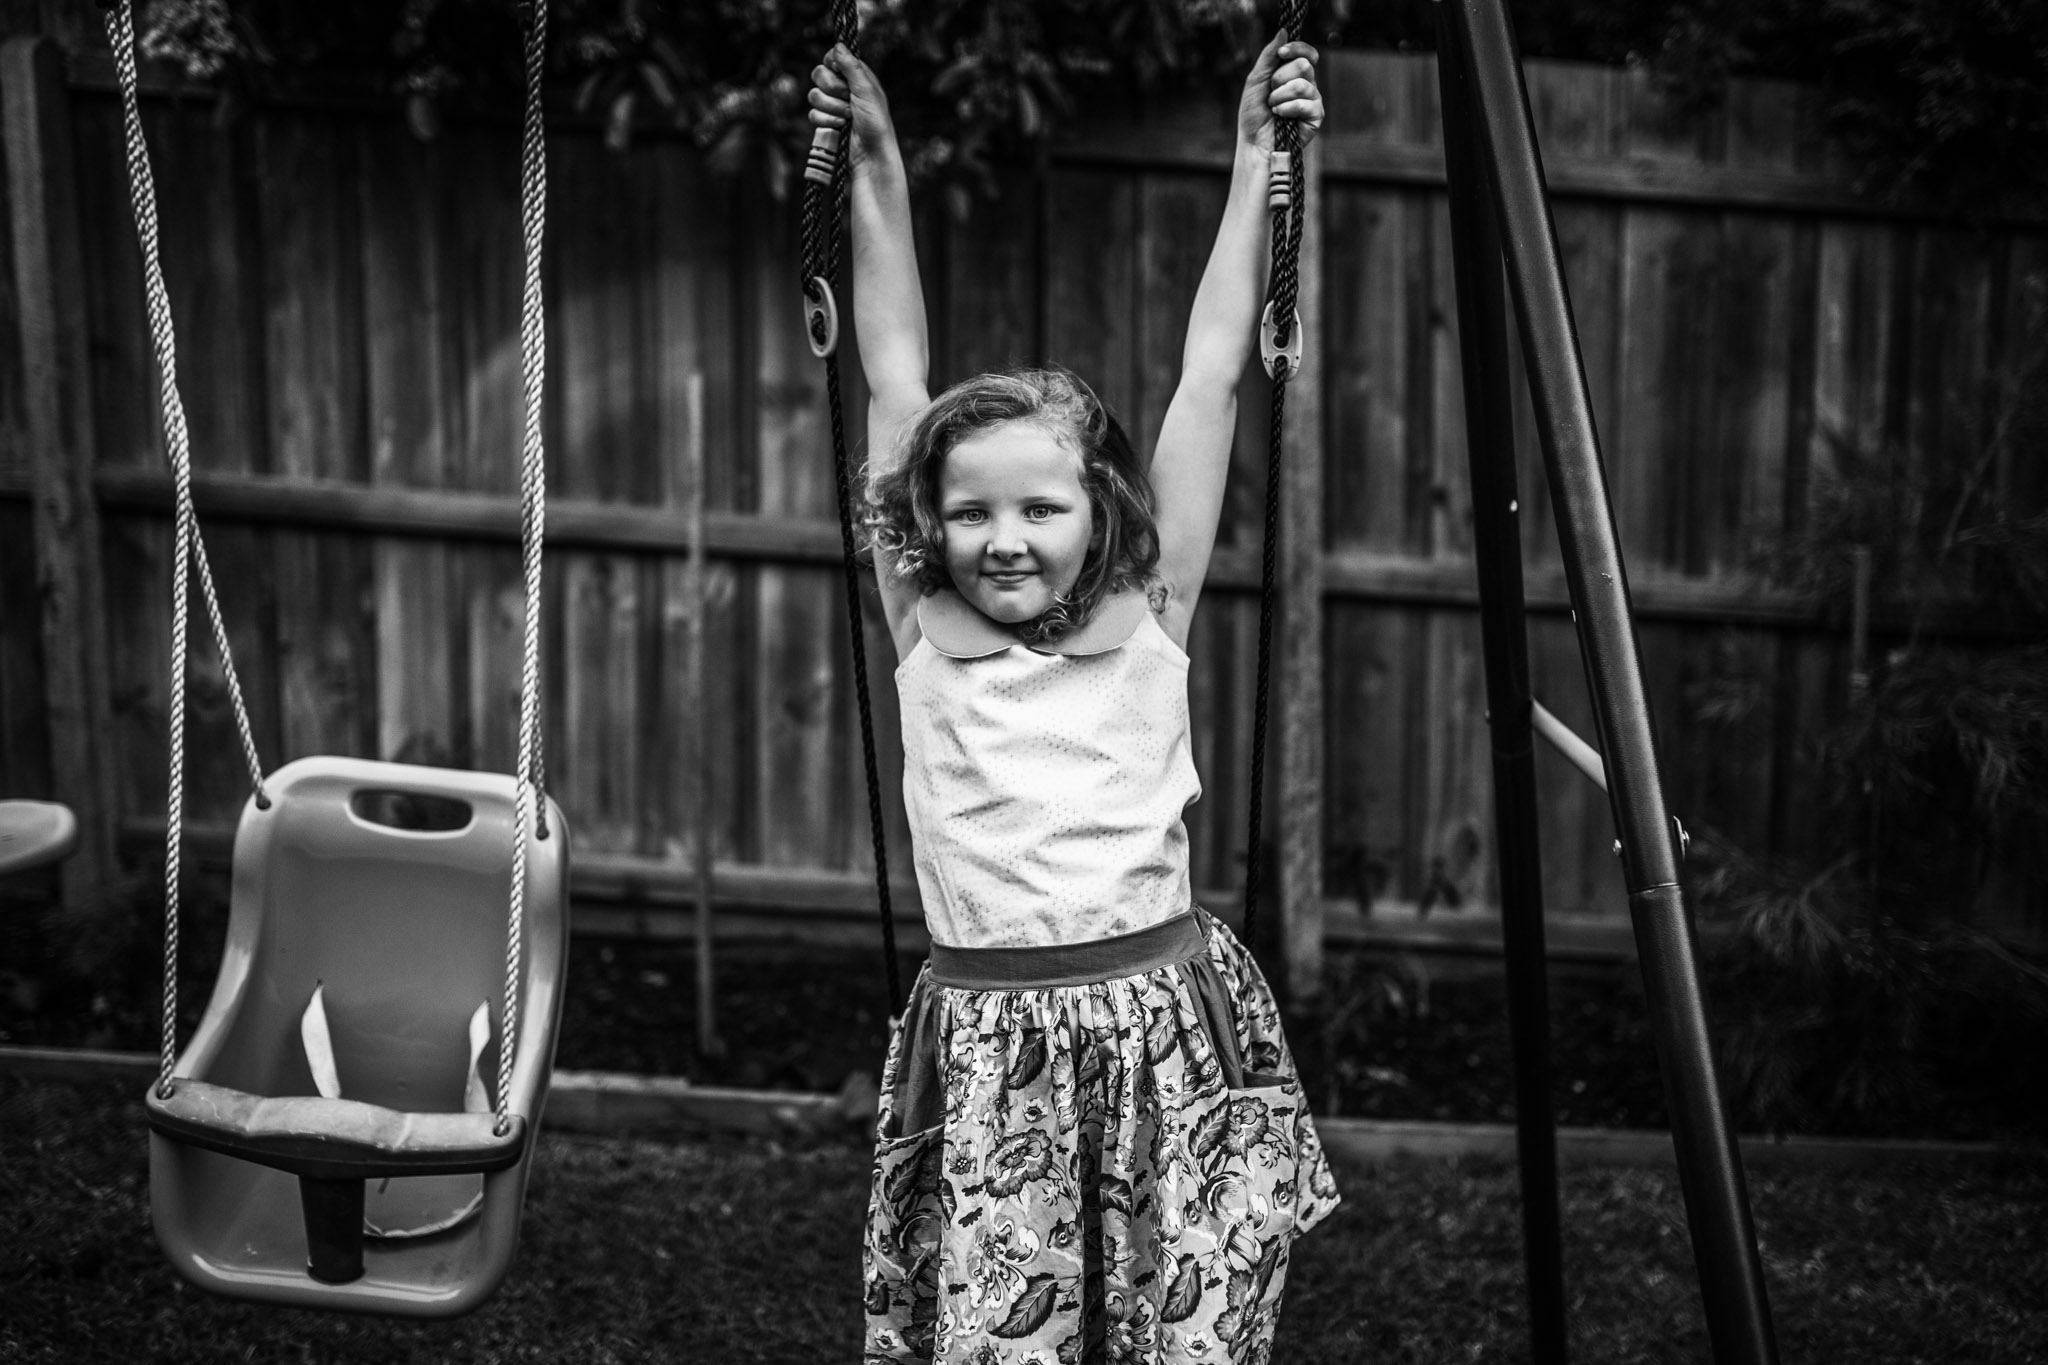 When we step back and allow a child to be themselves, we are so often surprised and rewarded by stunning results.